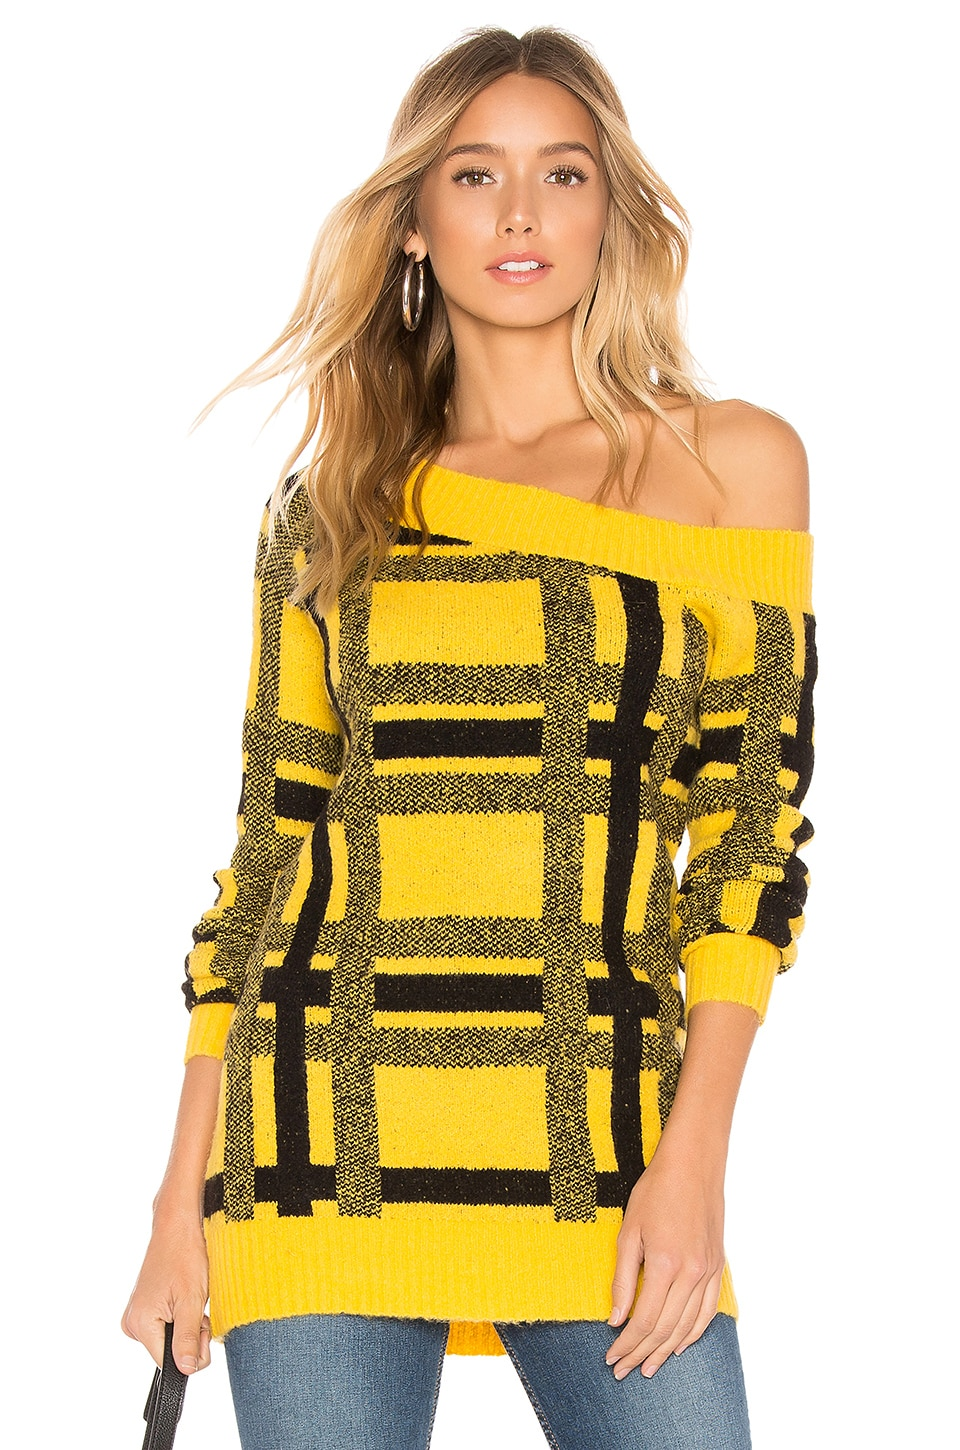 Tularosa Vernon Sweater in Mustard Plaid